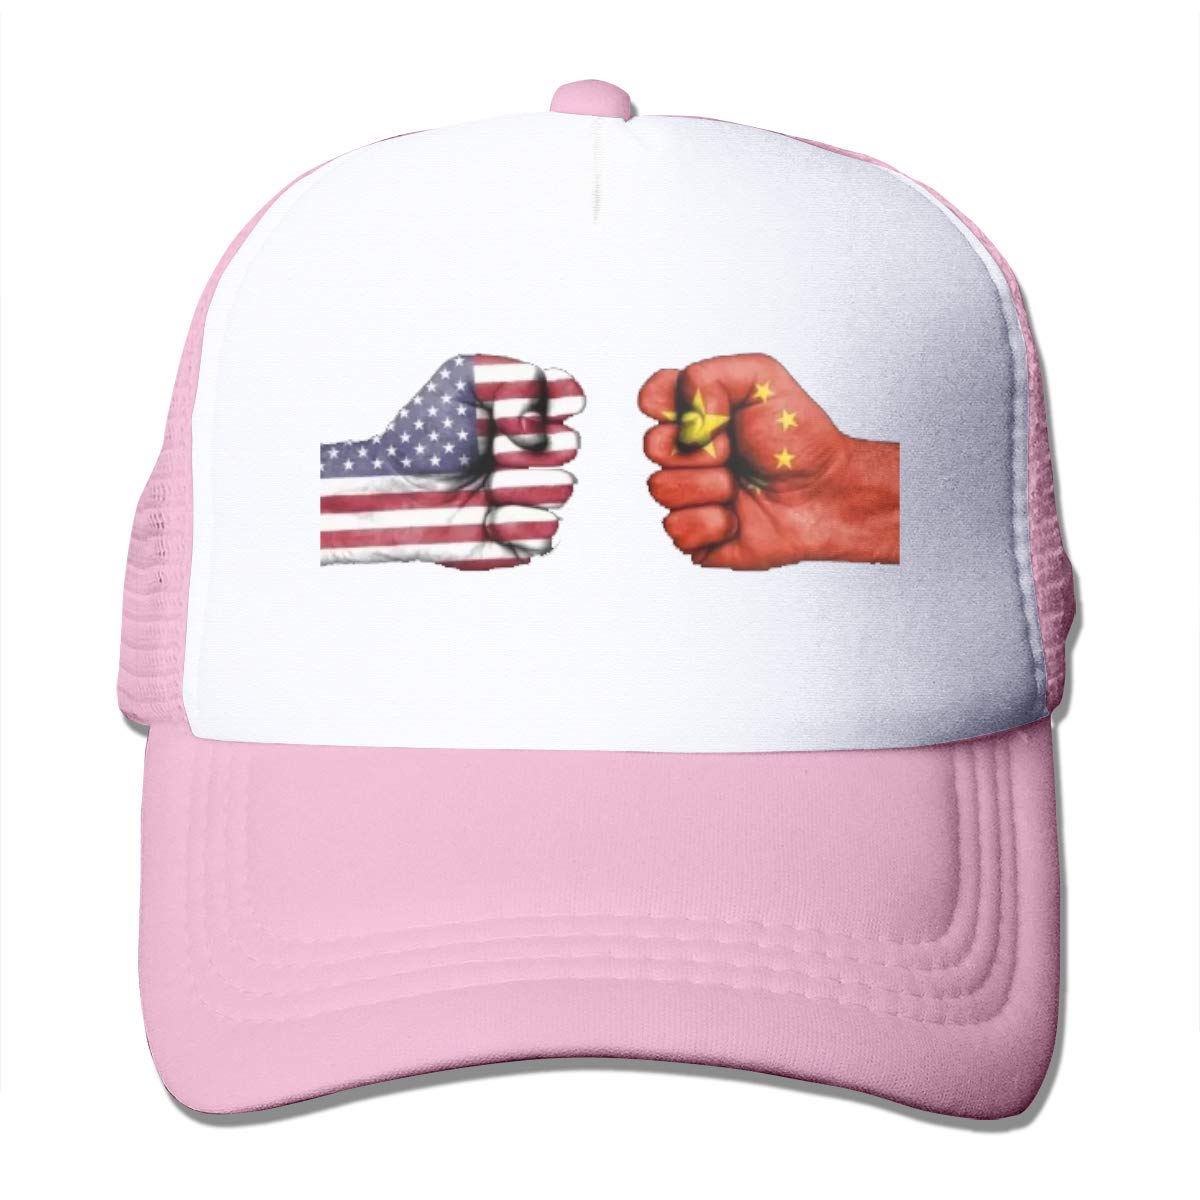 Zhiwei Station China and American Unisex 3D Printed Trucker Hat Pink